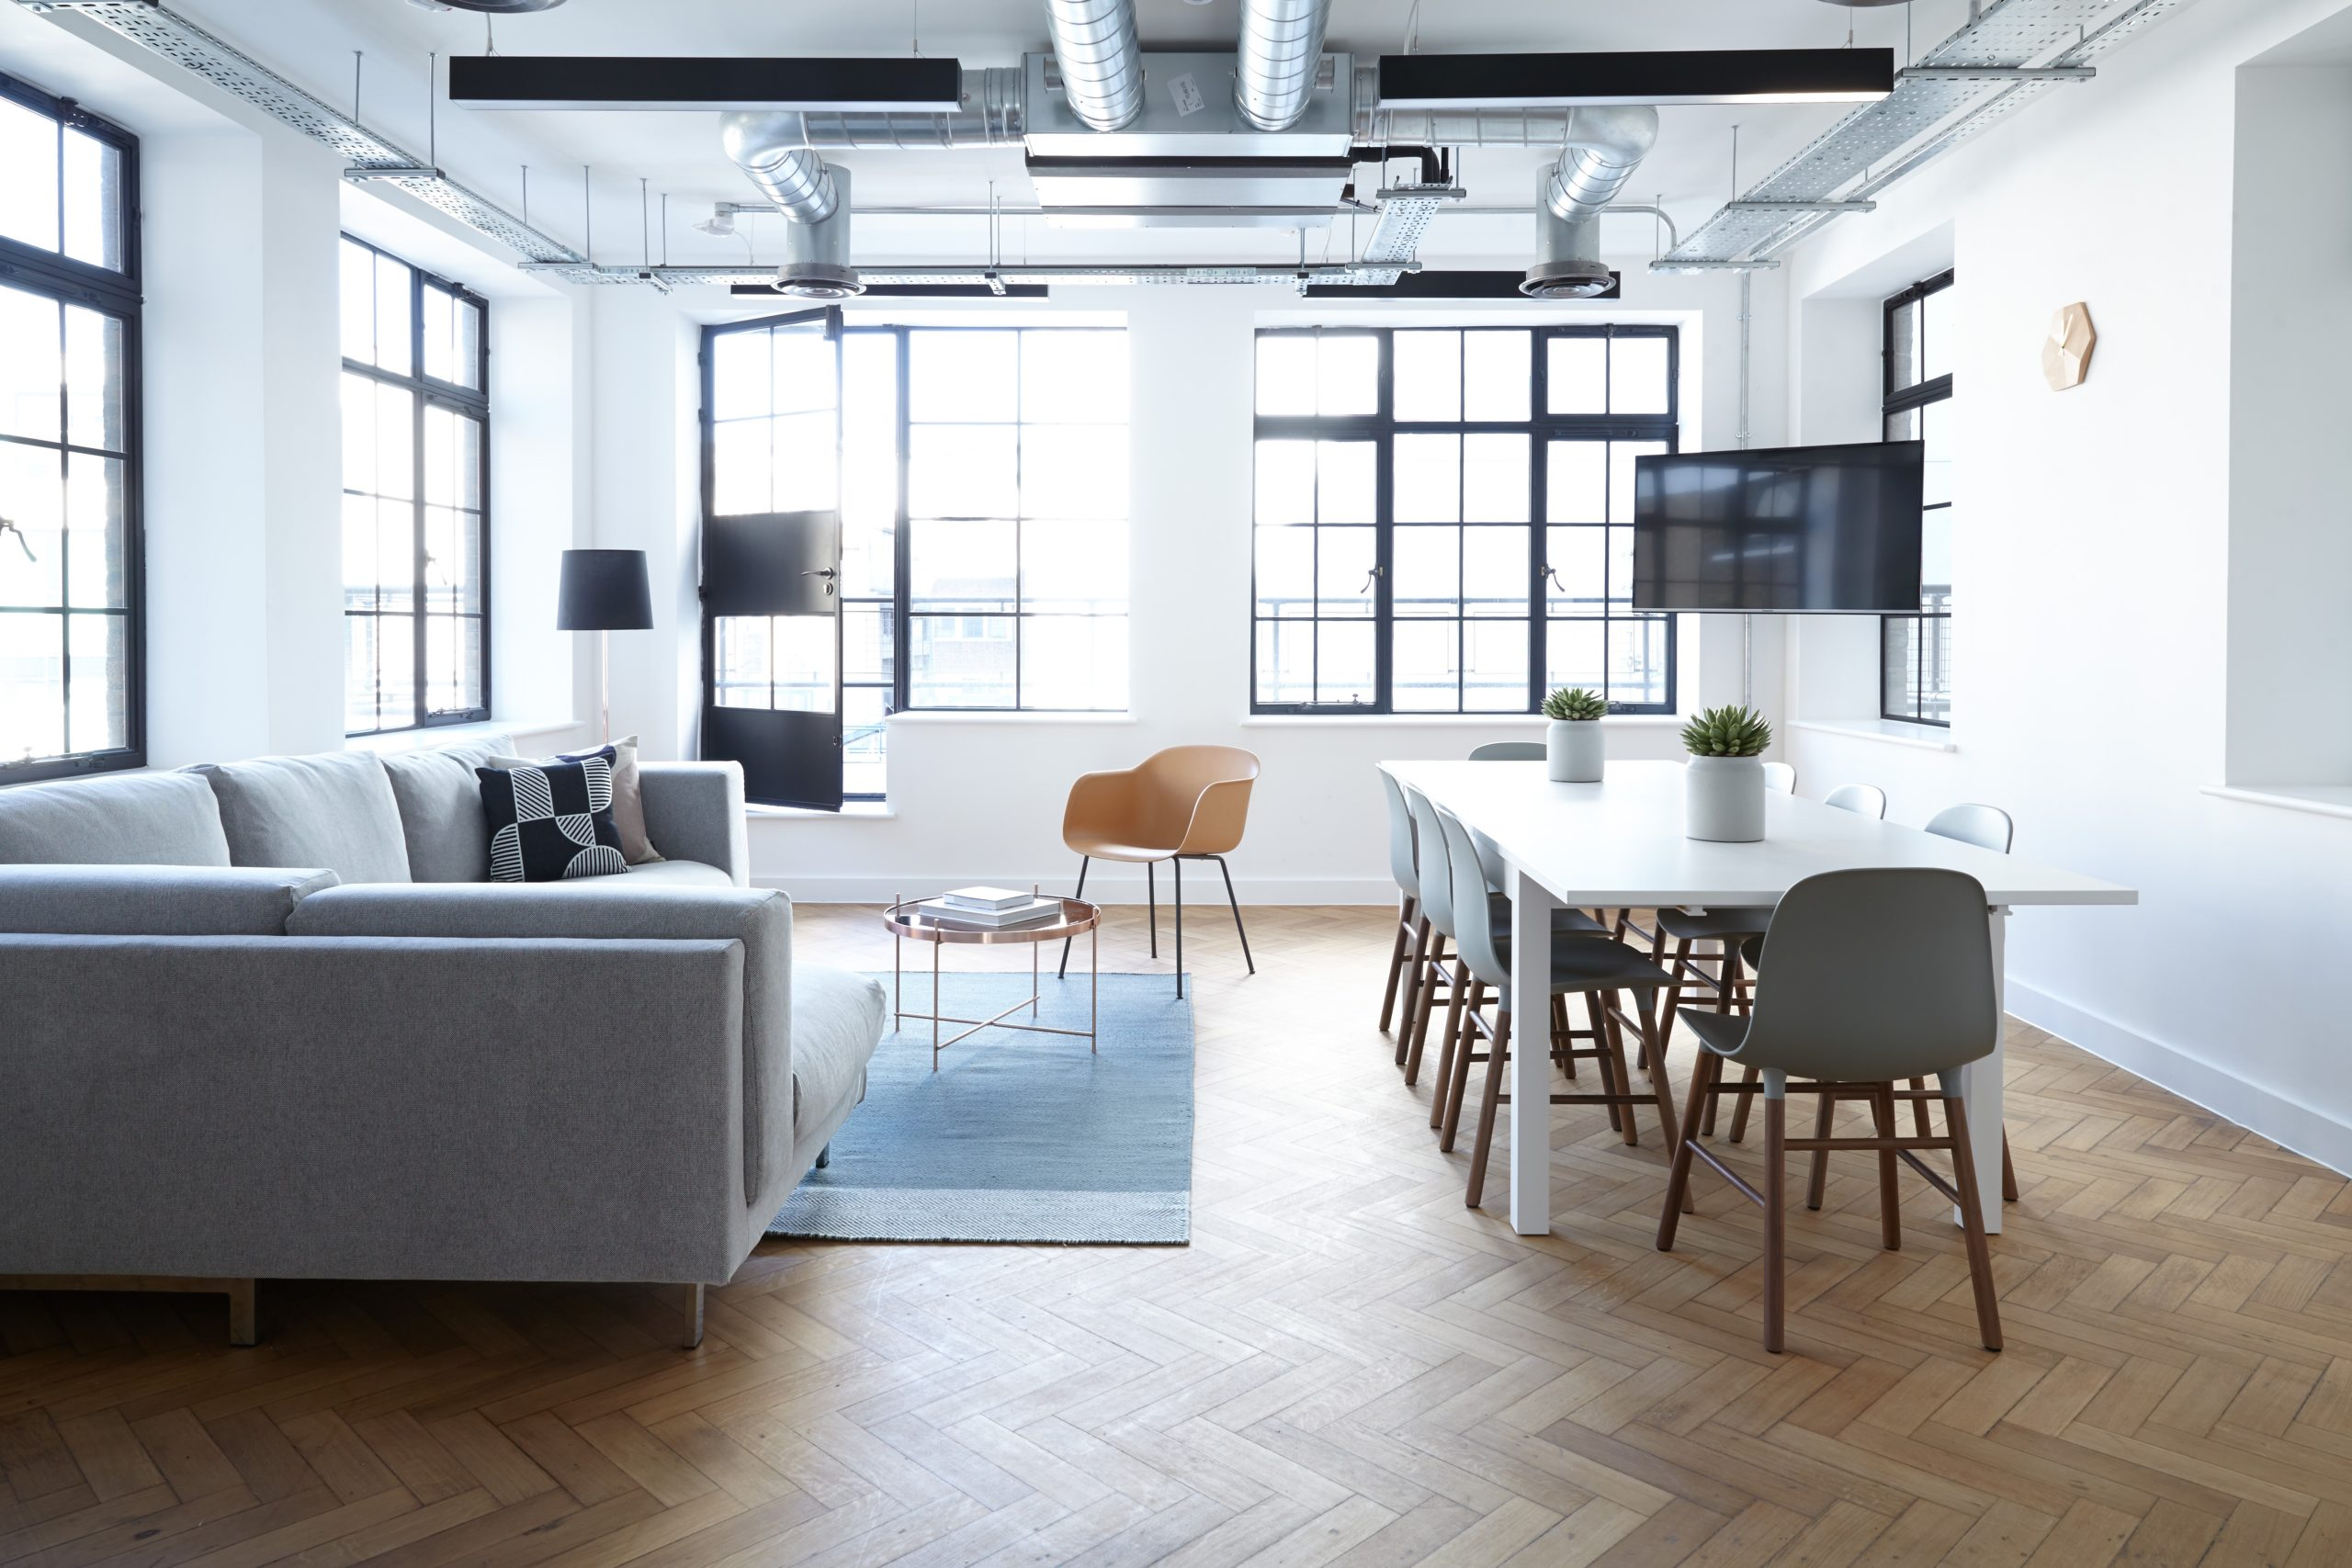 Home Cleaning Service | Office Cleaning Service